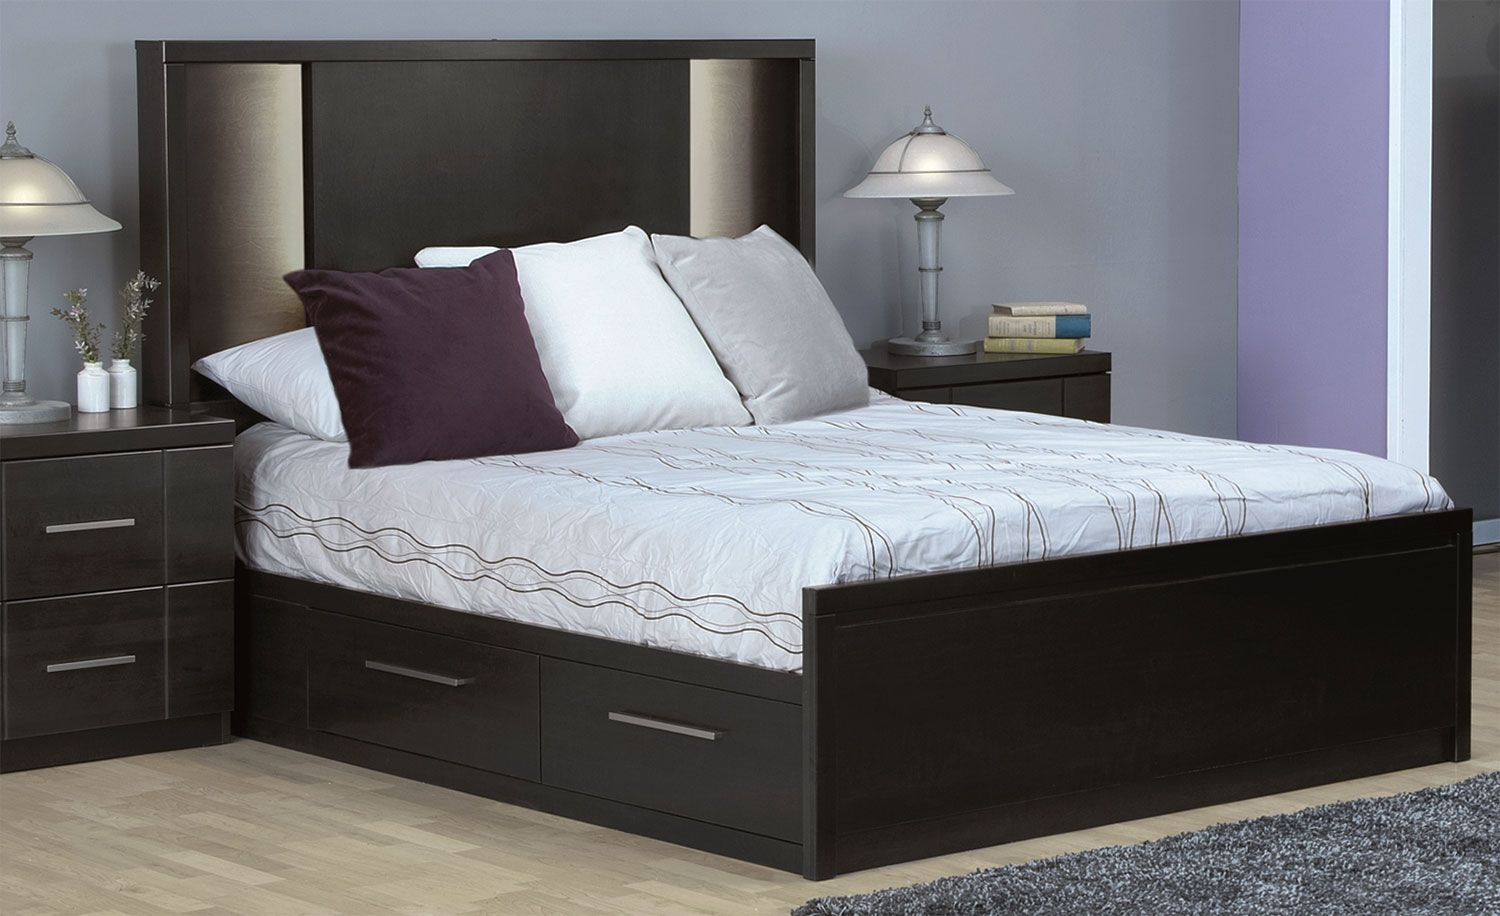 Seville Queen Storage Bed Charcoal Bed frame with